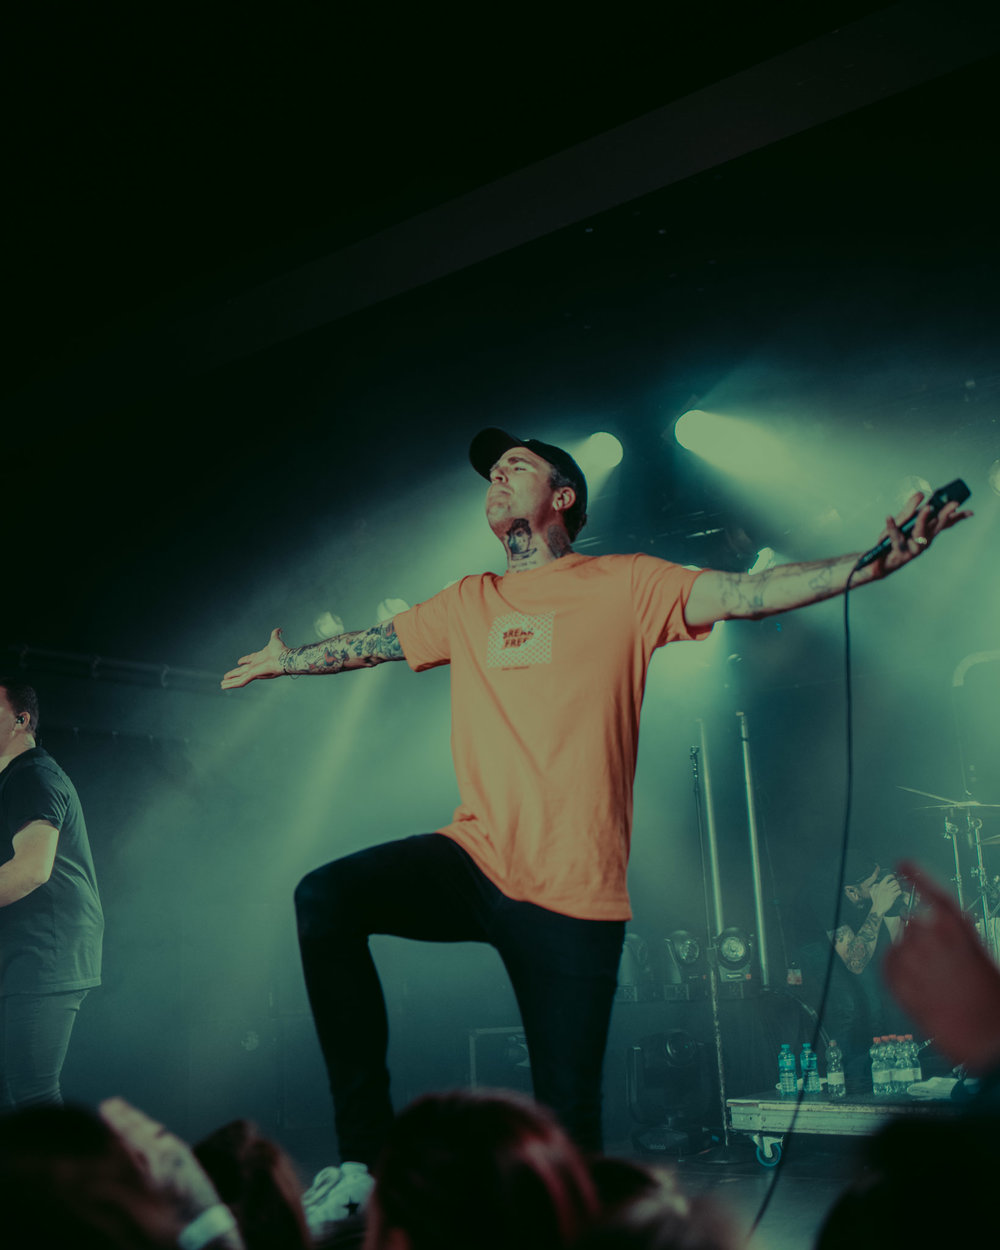 THE AMITY AFFLICTION_20171203_0181_@arnecrdnls.jpg